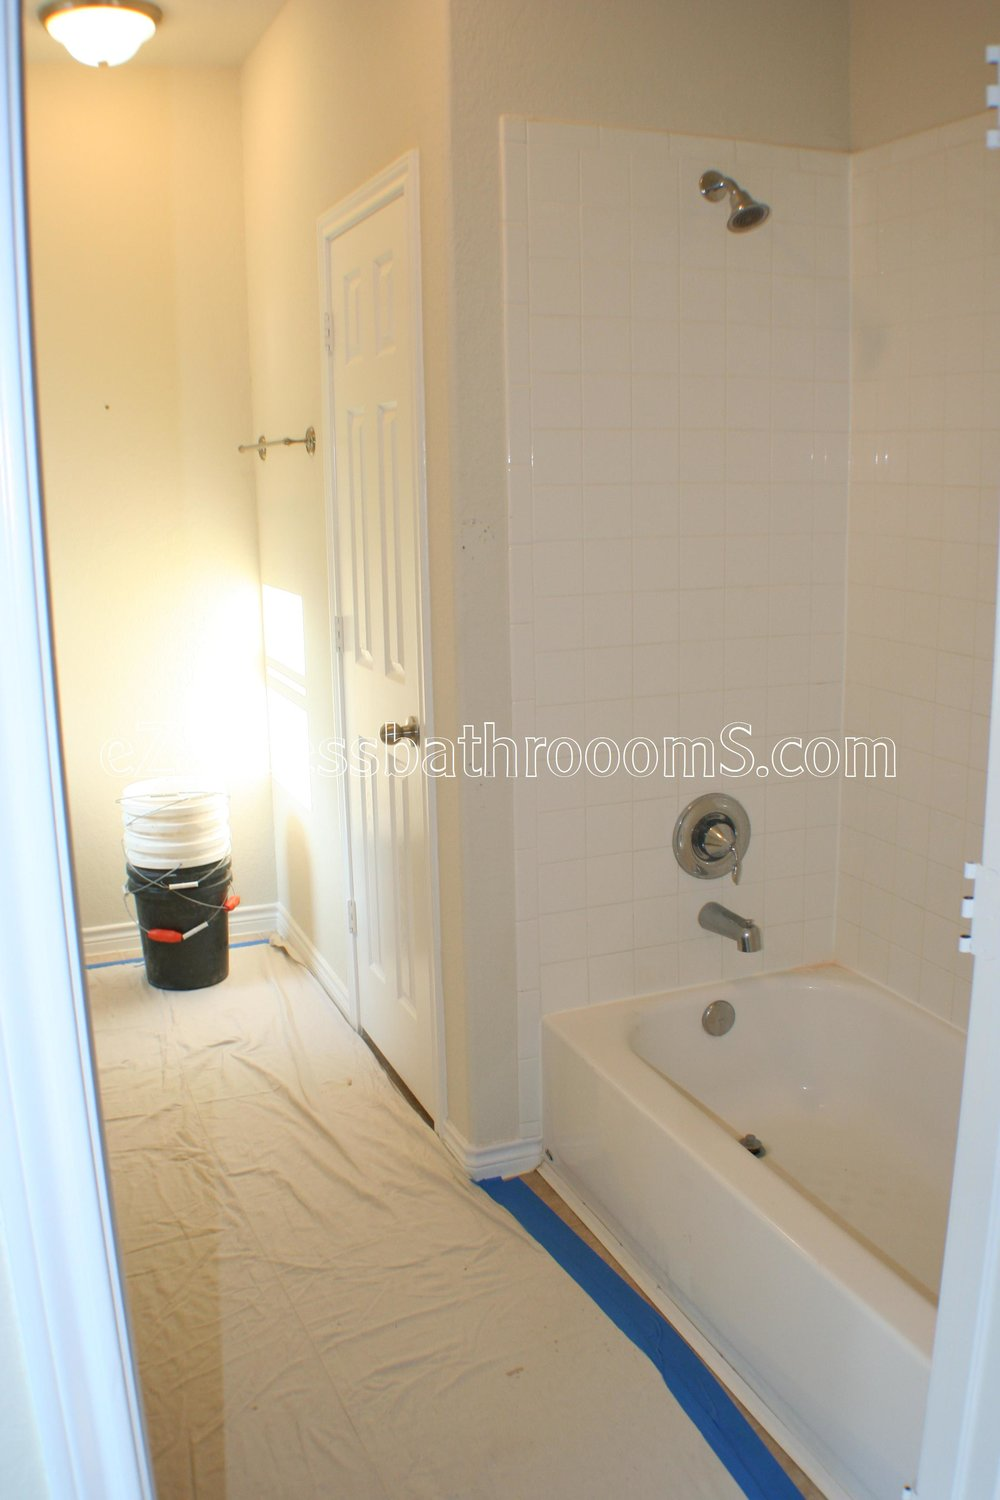 TUBTOSHOWERS CONVERSIONS EZACCESSBATHROOMS.COM 832202843 BRYANT 023.JPG